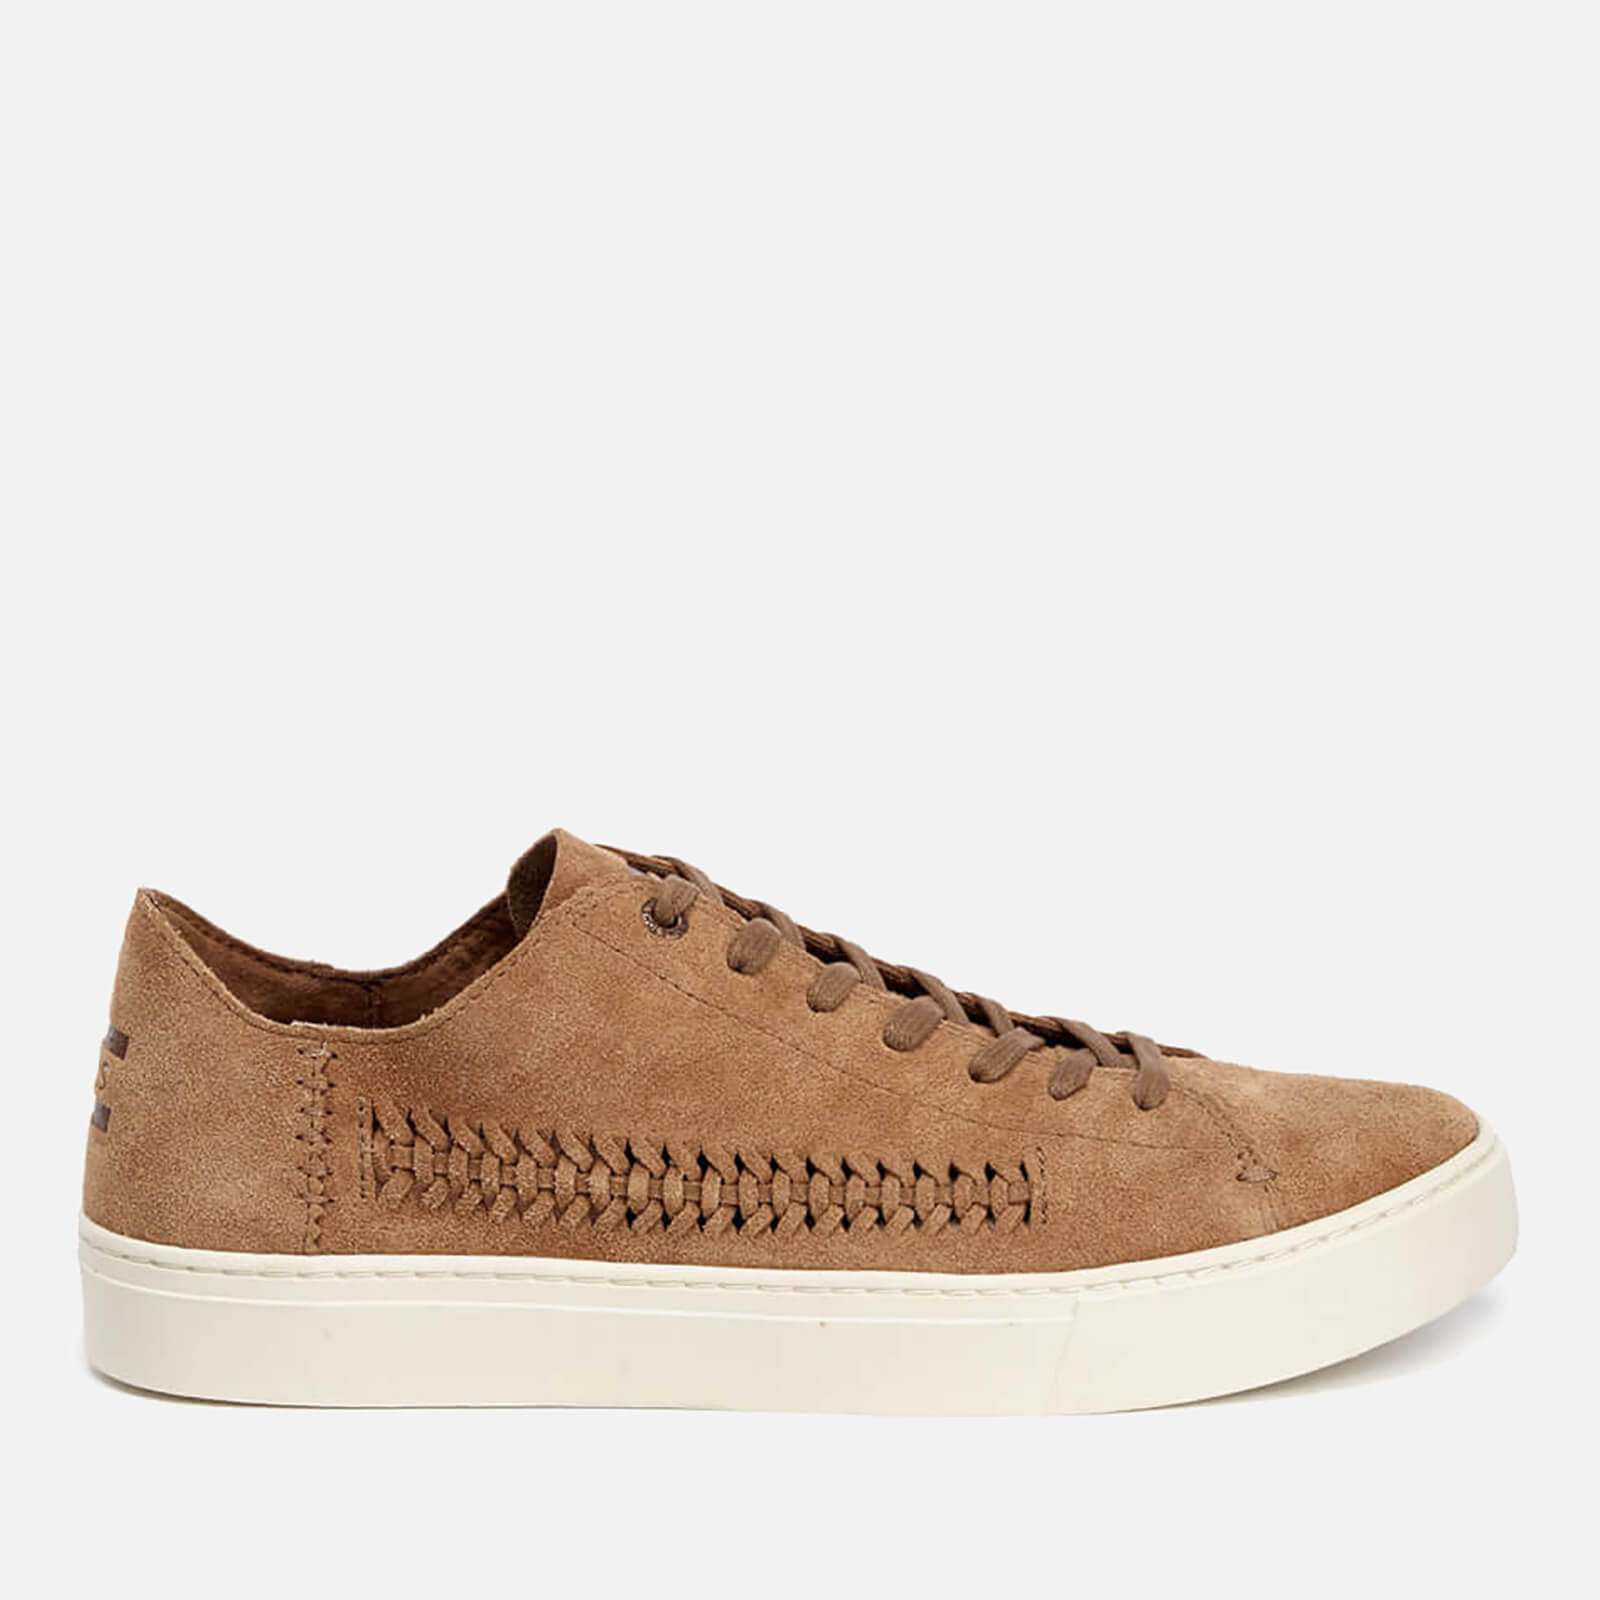 64277f52b91b TOMS Men s Lenox Woven Panel Suede Trainers - Toffee Suede Woven Panel Mens  Footwear